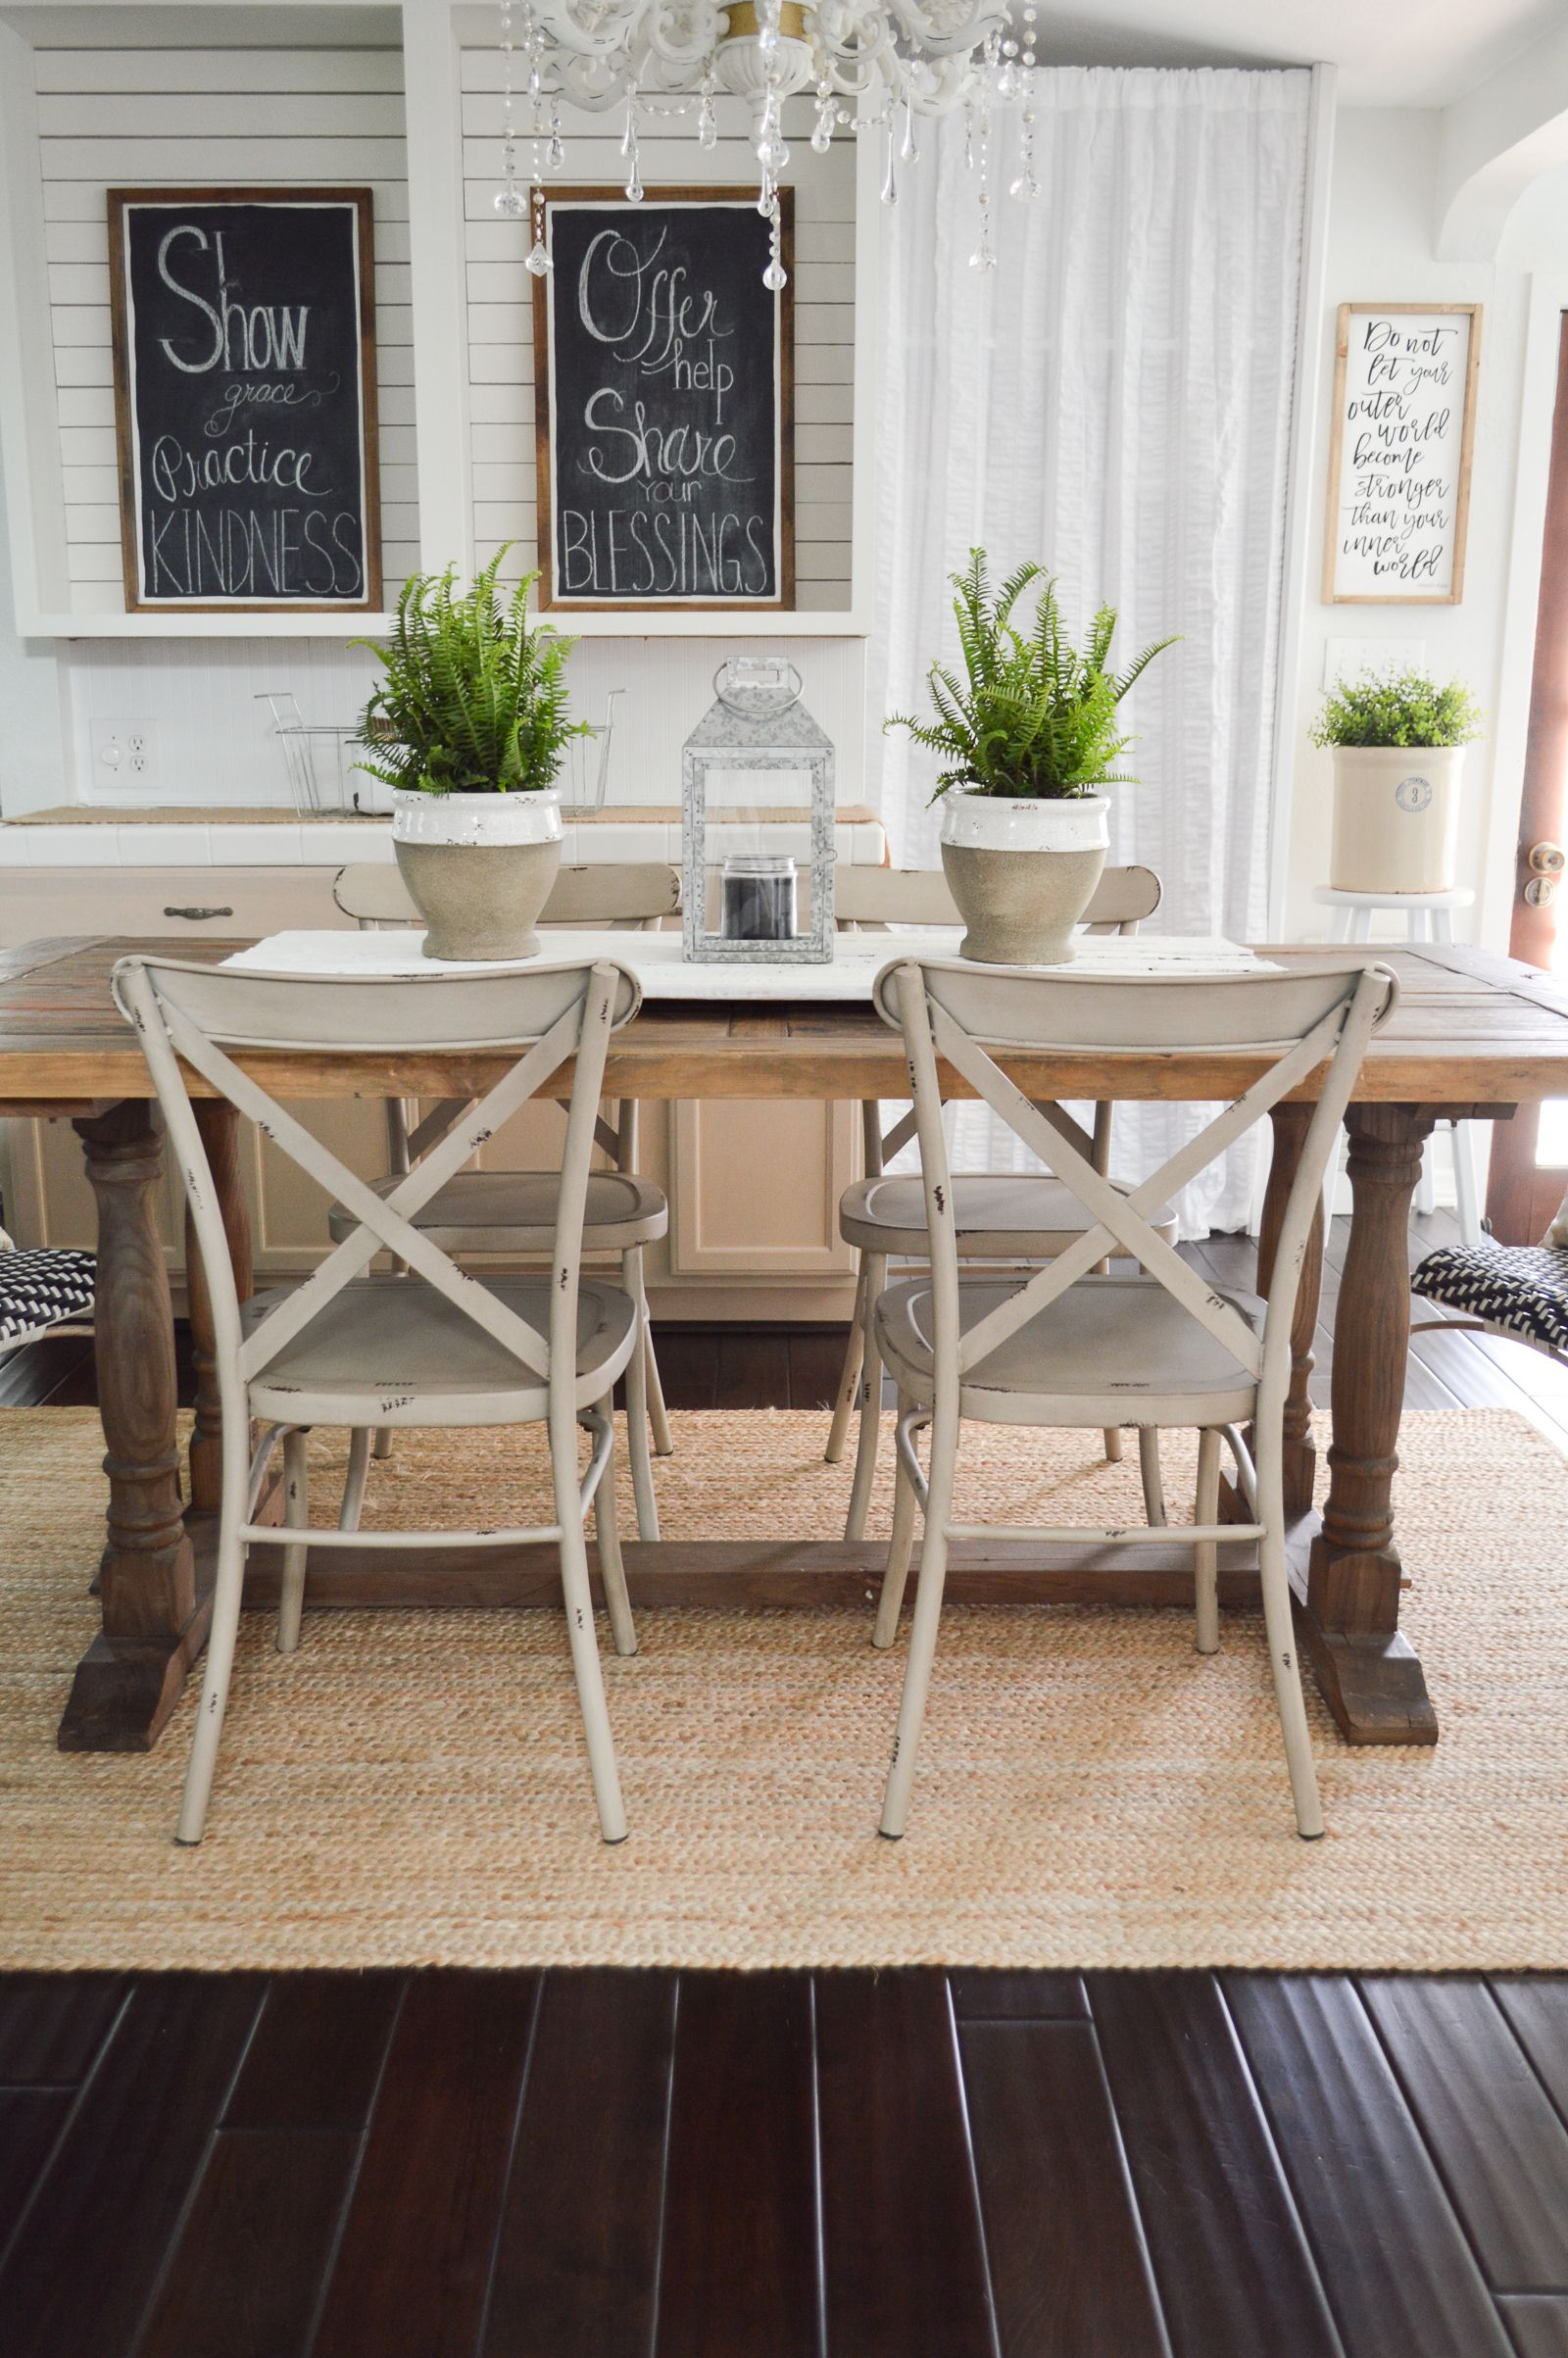 Outdoor In Spring Home Decor And Furniture Ideas Dining Room Table Farmhouse Style Furniture Interior Decorating Living Room